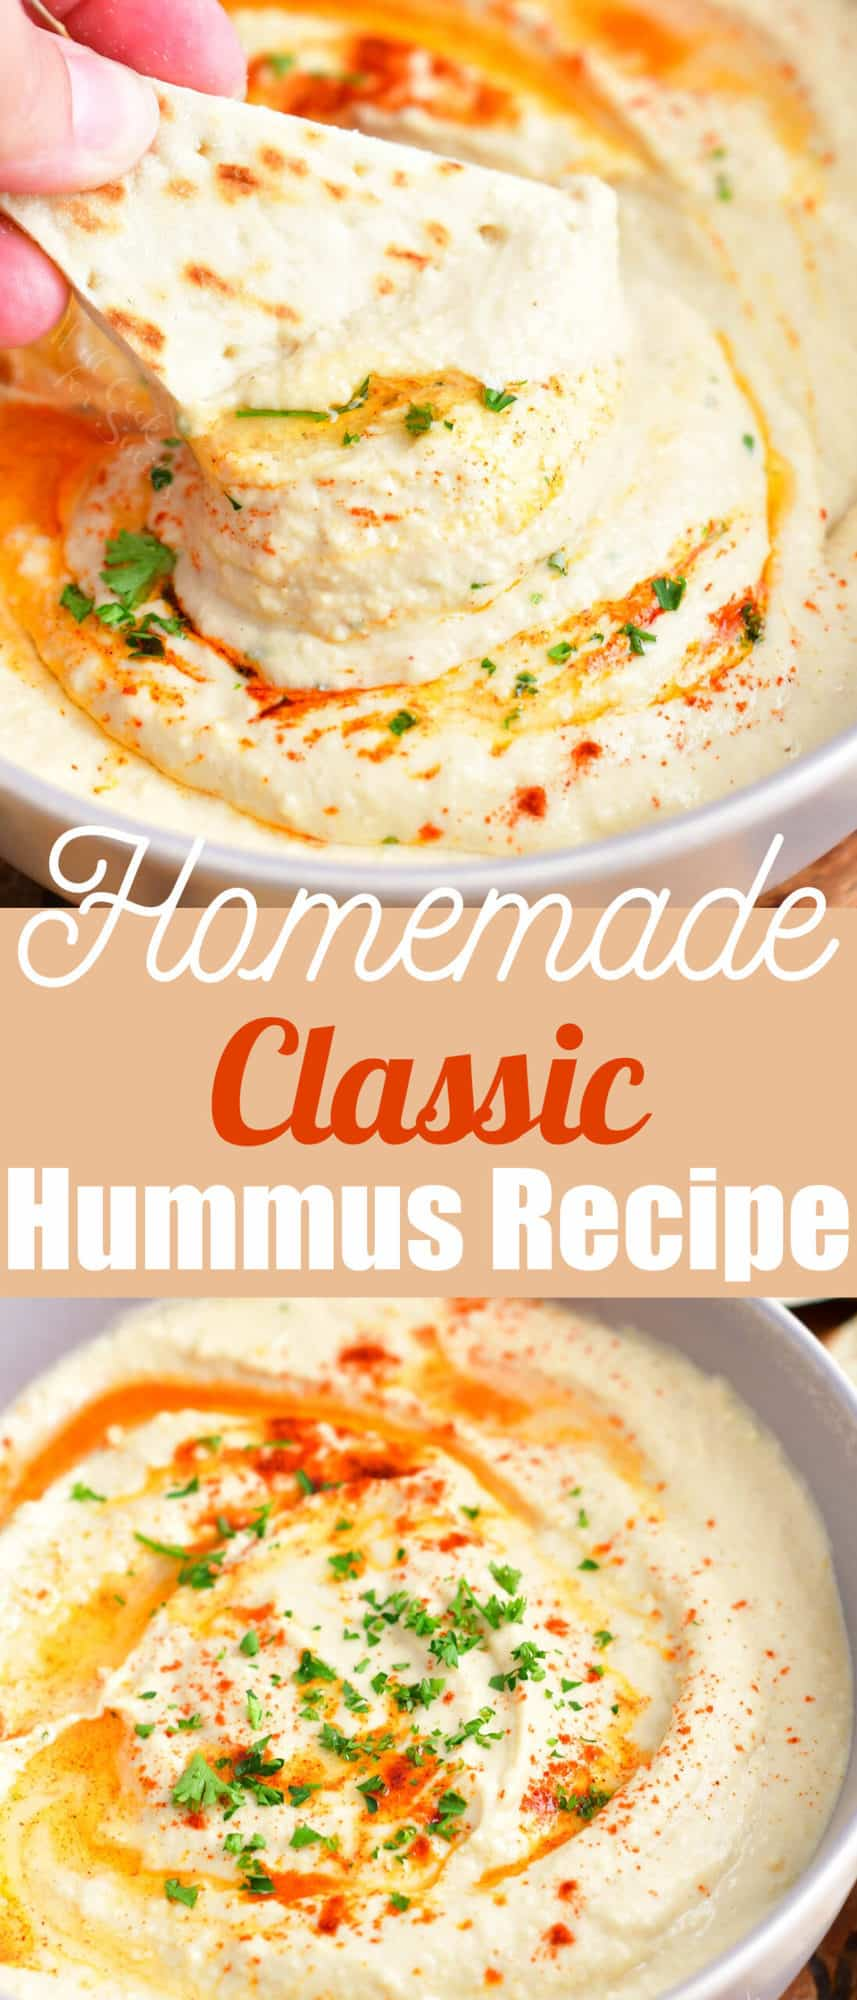 title collage with two images of scooping hummus with flatbread and hummus in a bowl